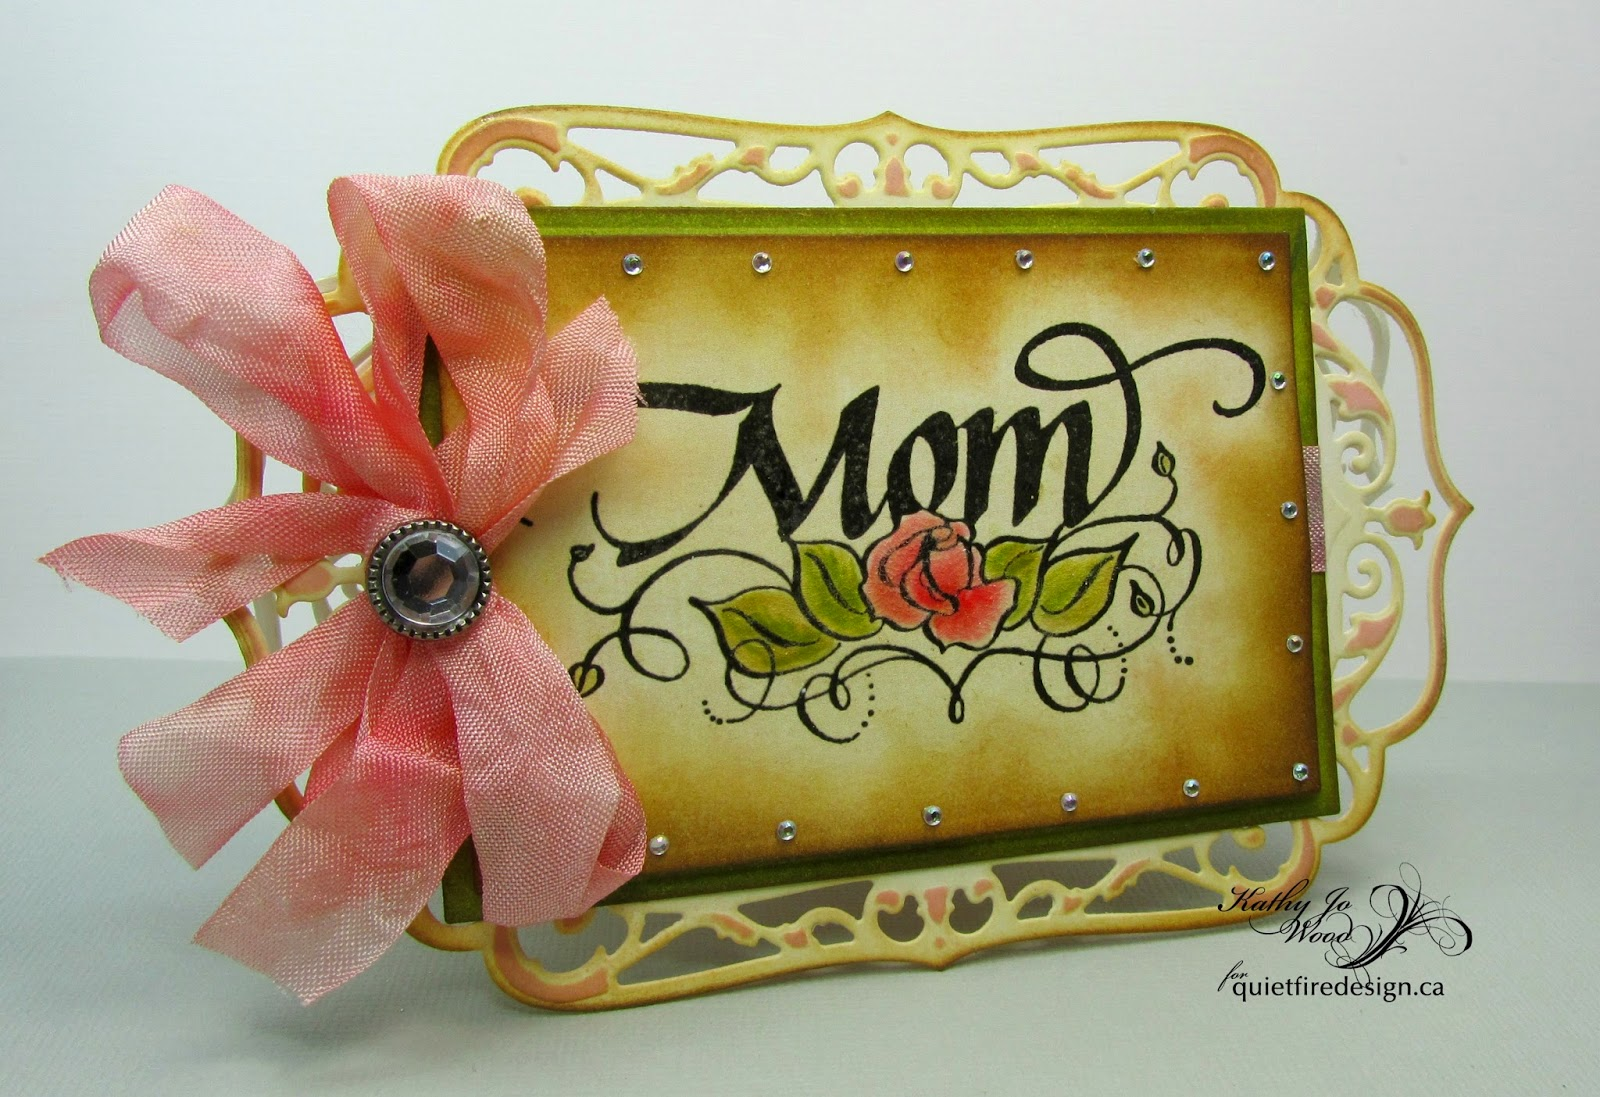 Quietfire, Mom Floral Ornament, Keep Calm & Call Mom, Spellbinders, Kathy Jo Wood, shaped card